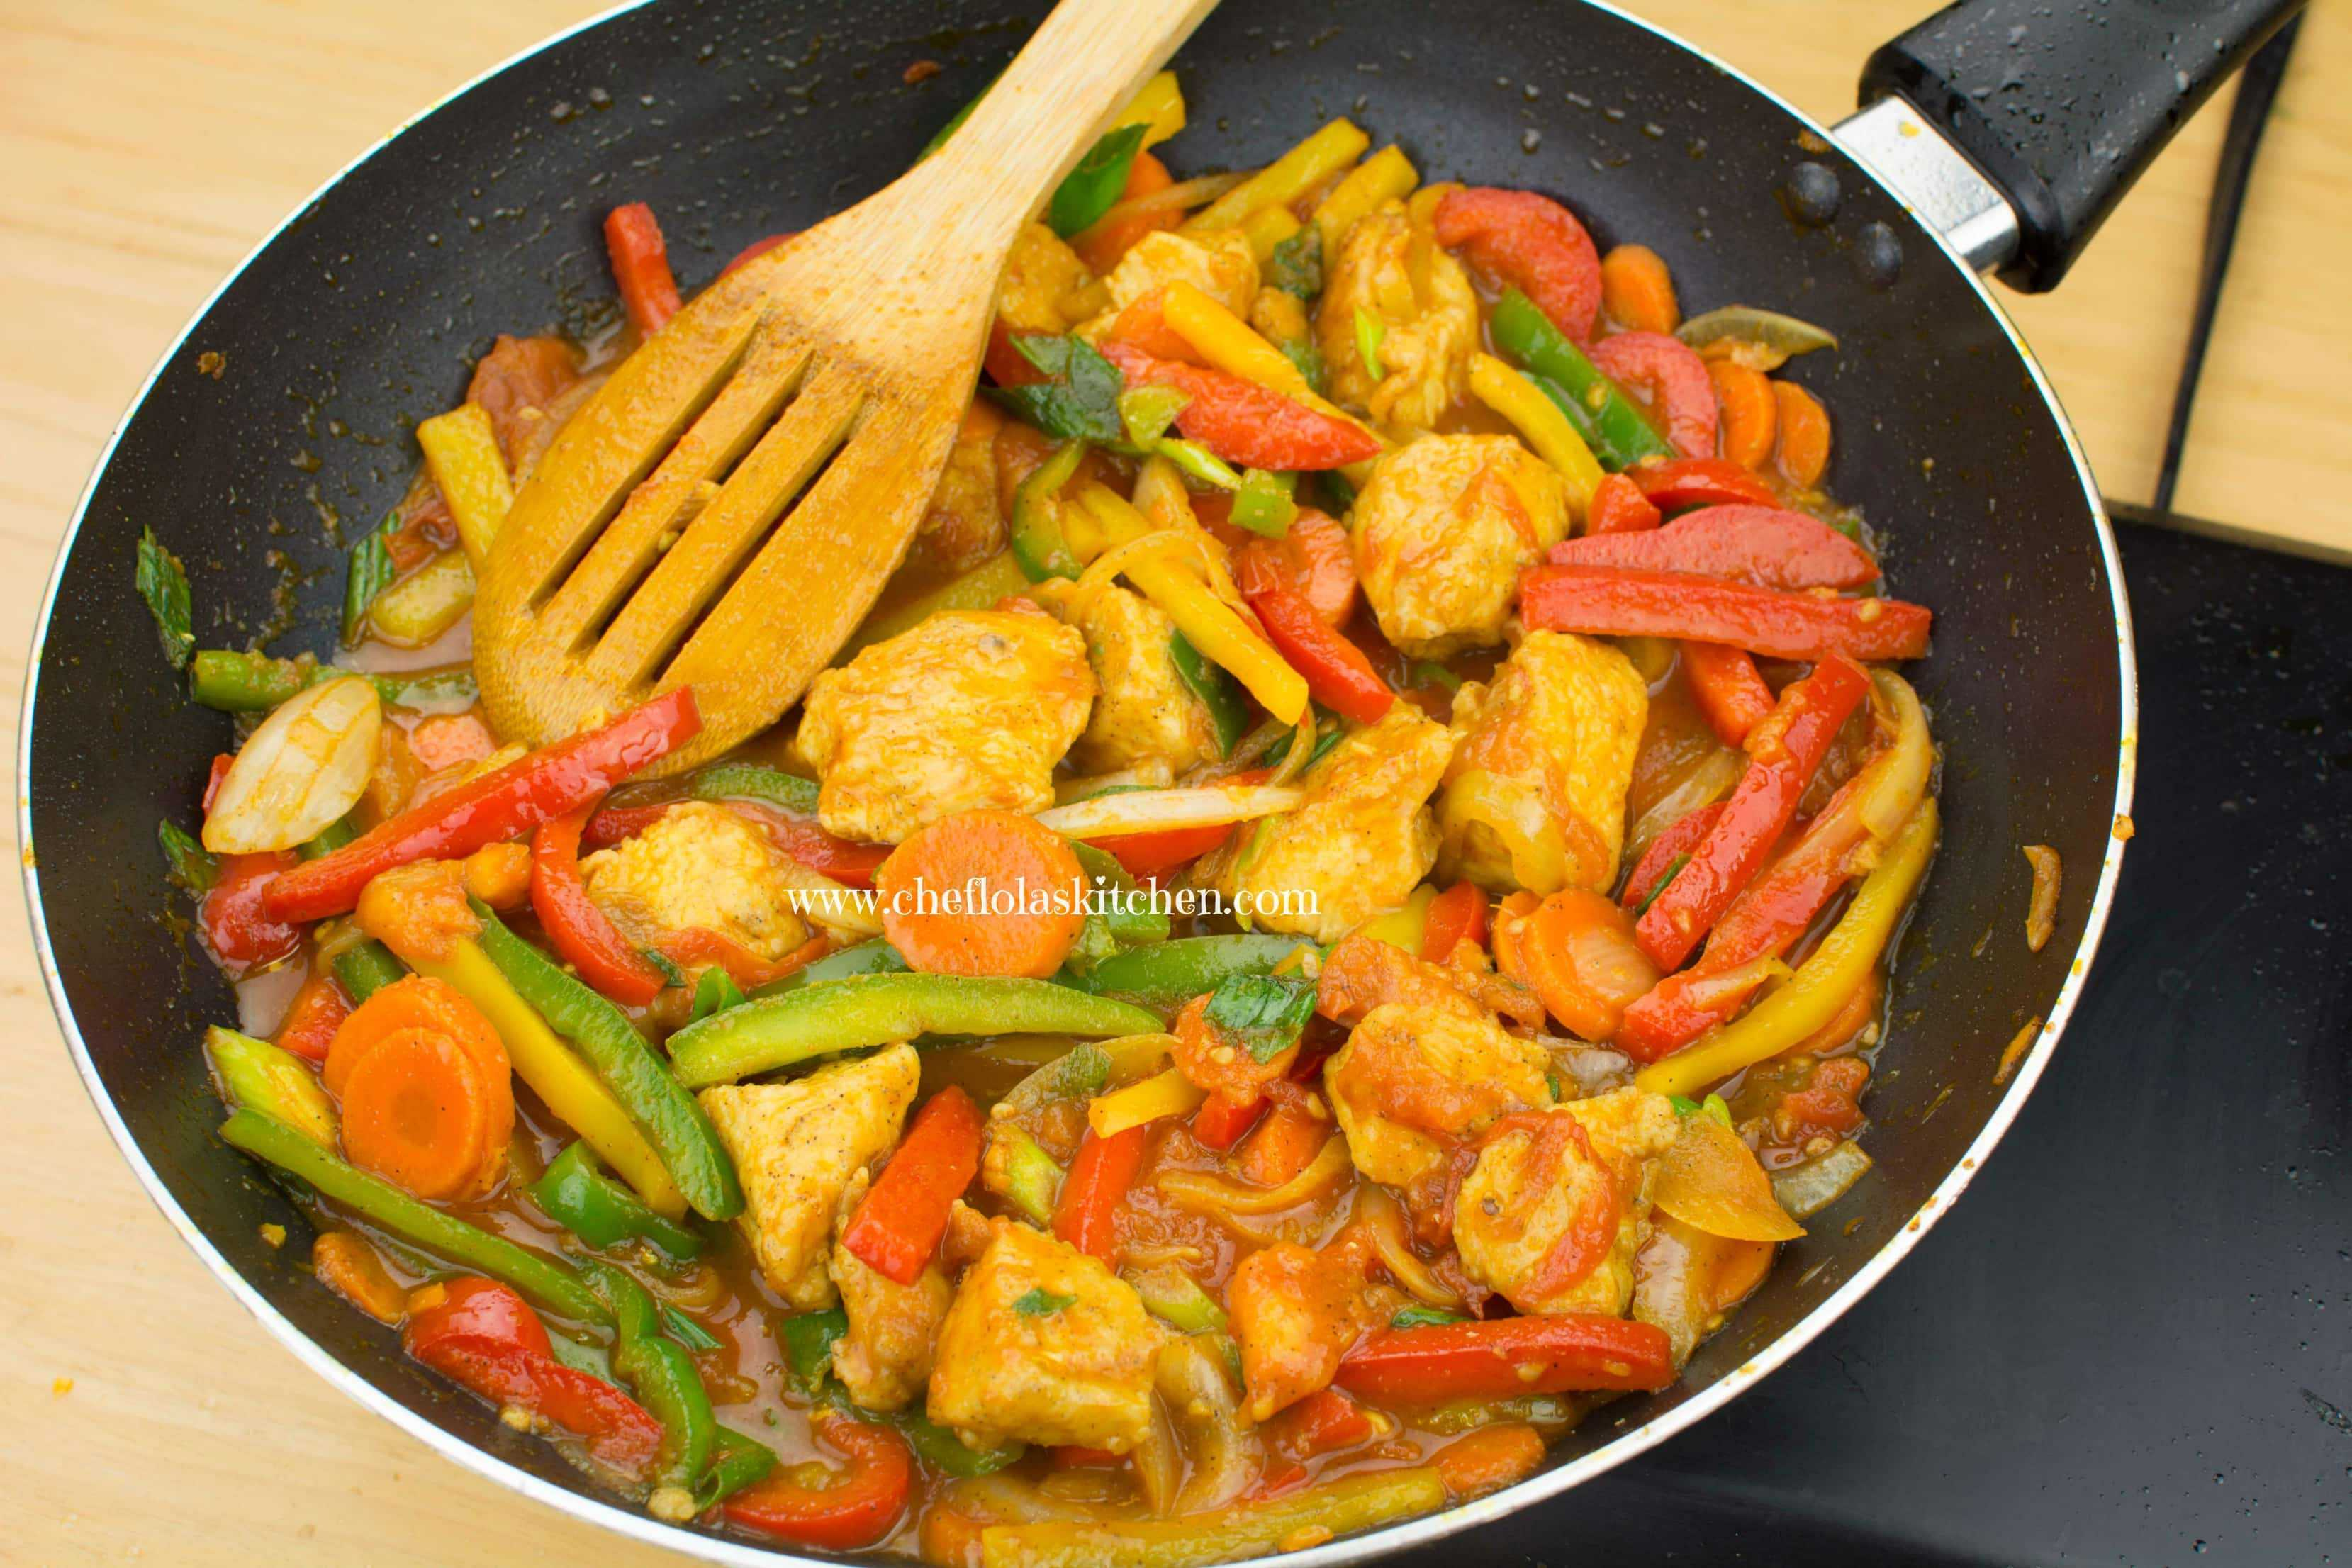 Chicken and Vegetable Stir fry in Tomato Sauce